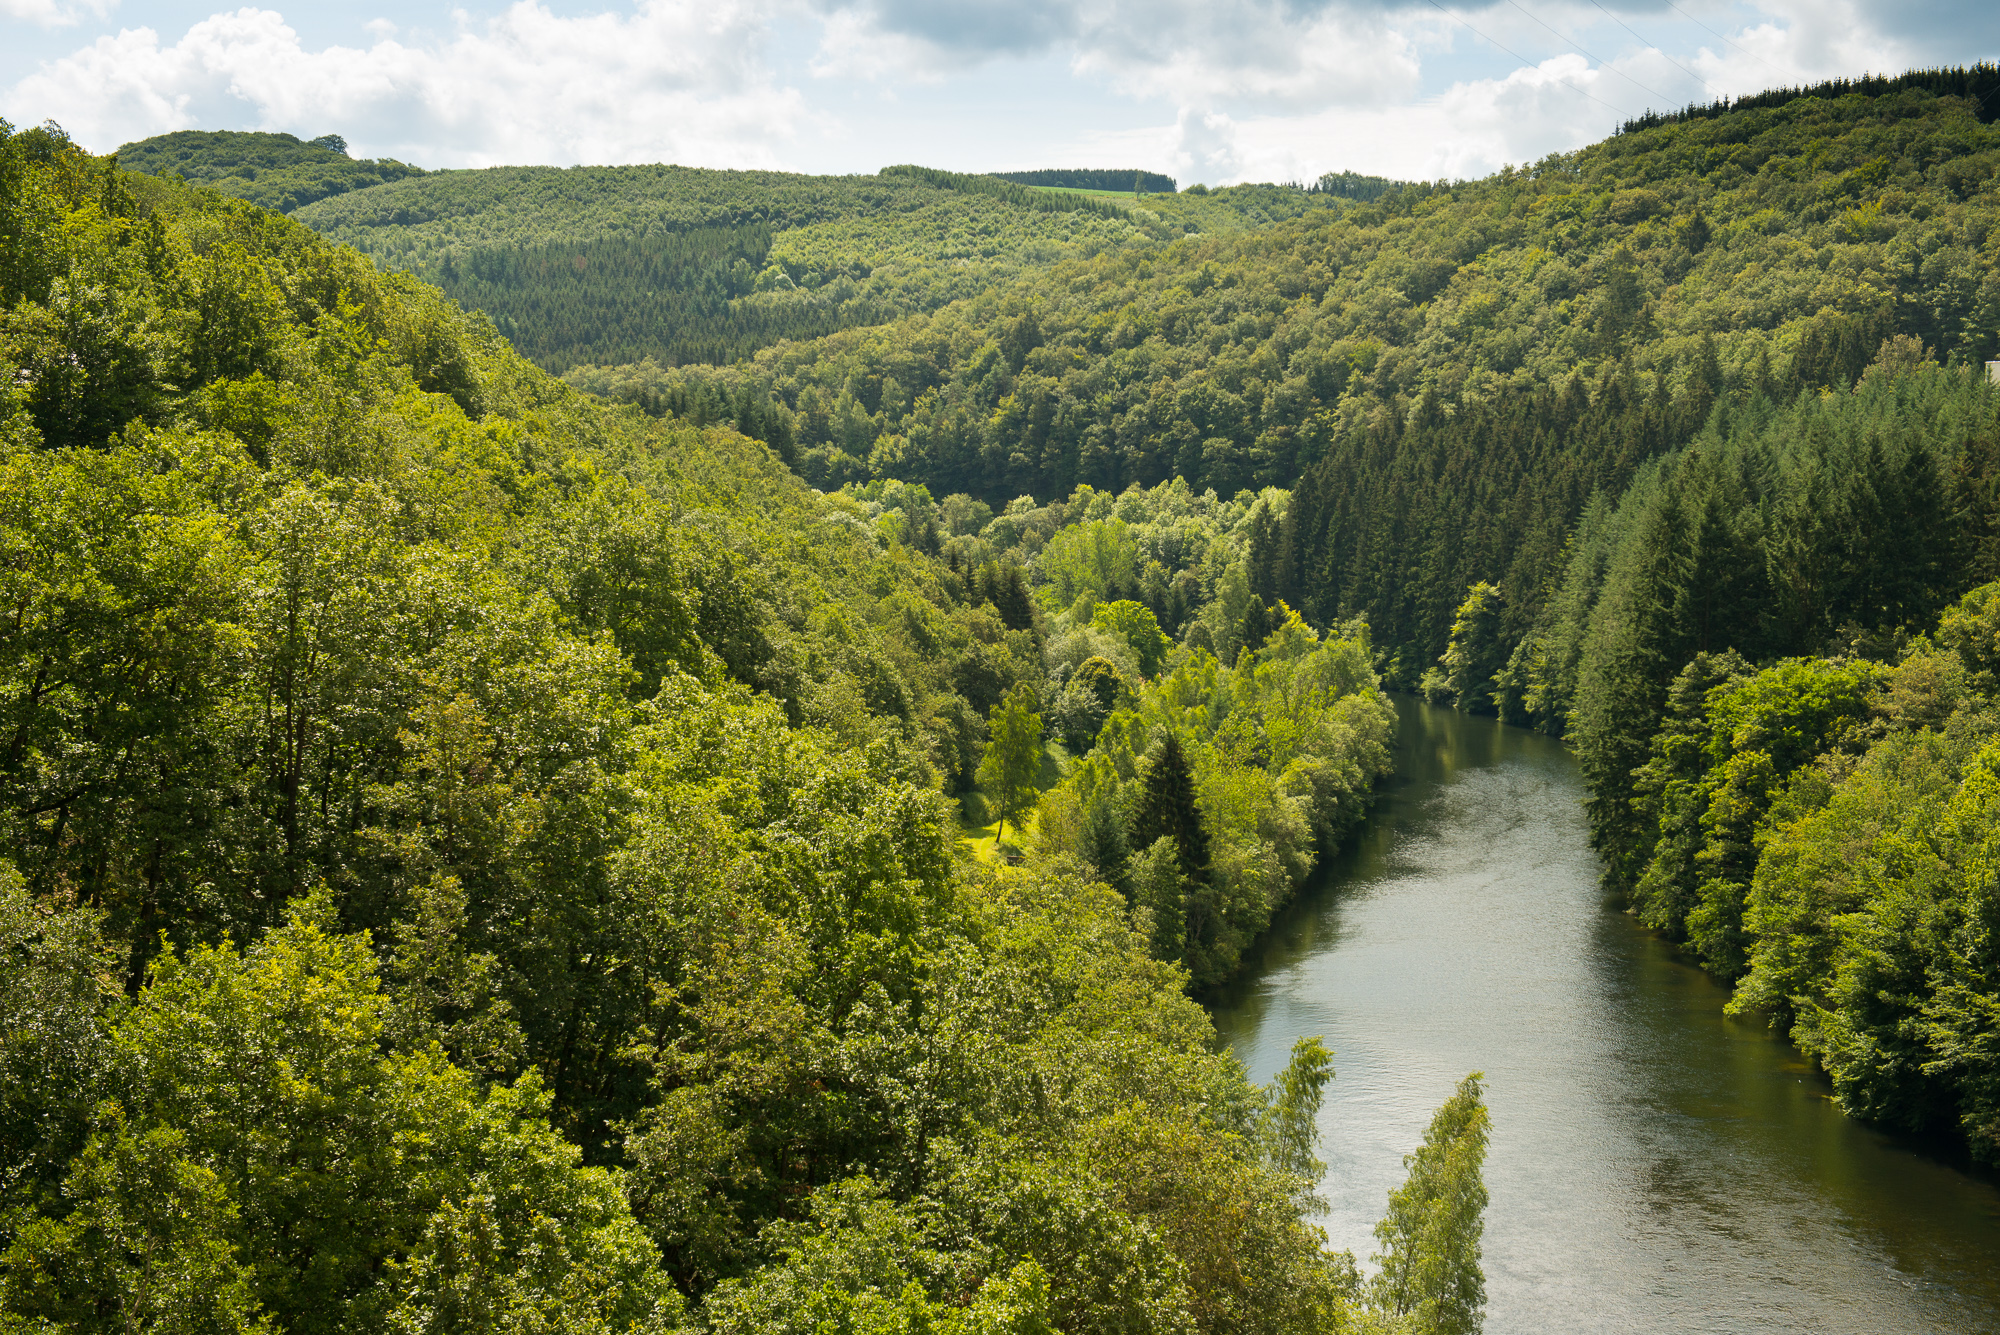 The Most Unique and Mysterious Forests in the World - Ardennes